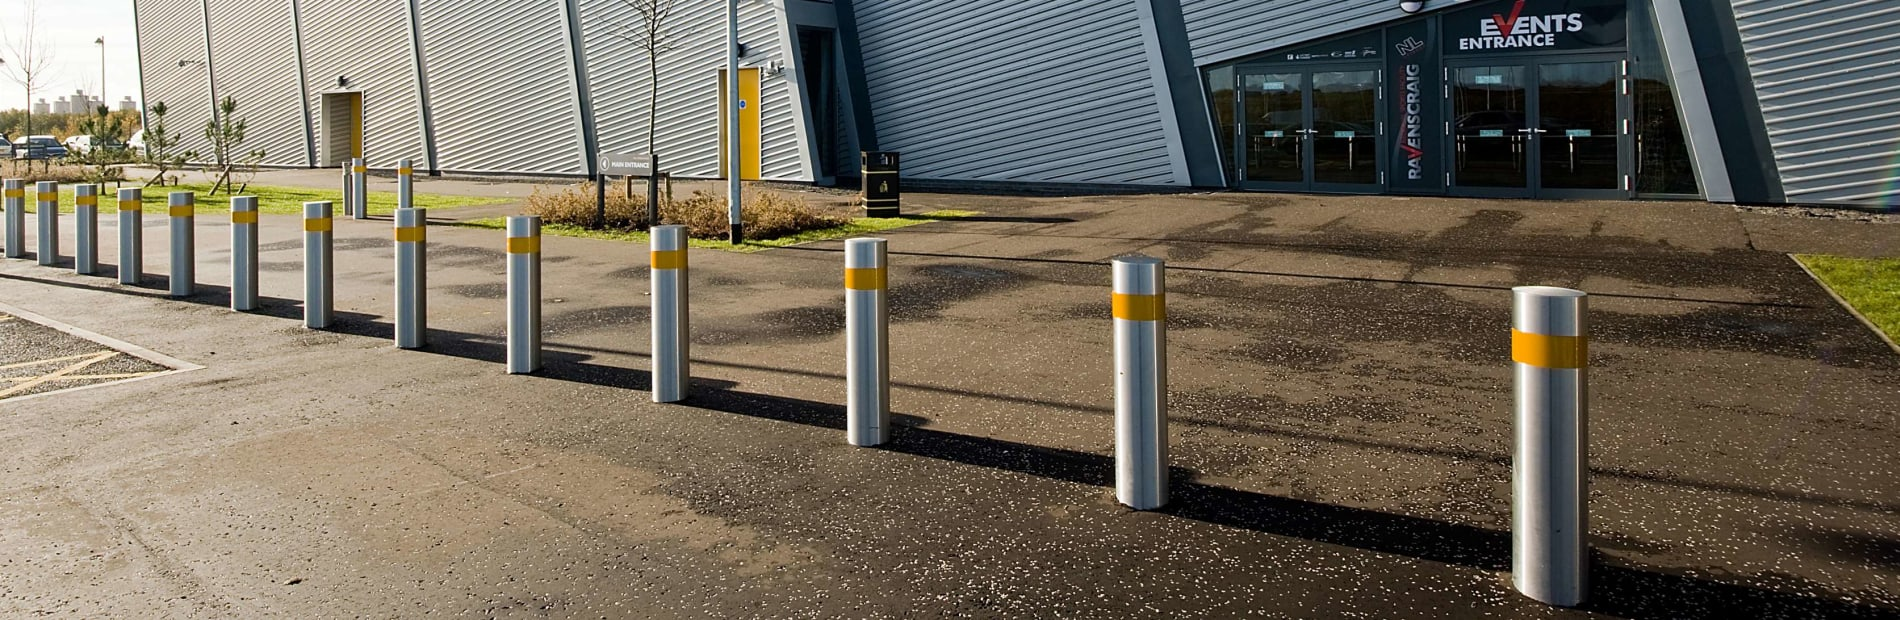 Rhinoguard bollards outside a commercial building